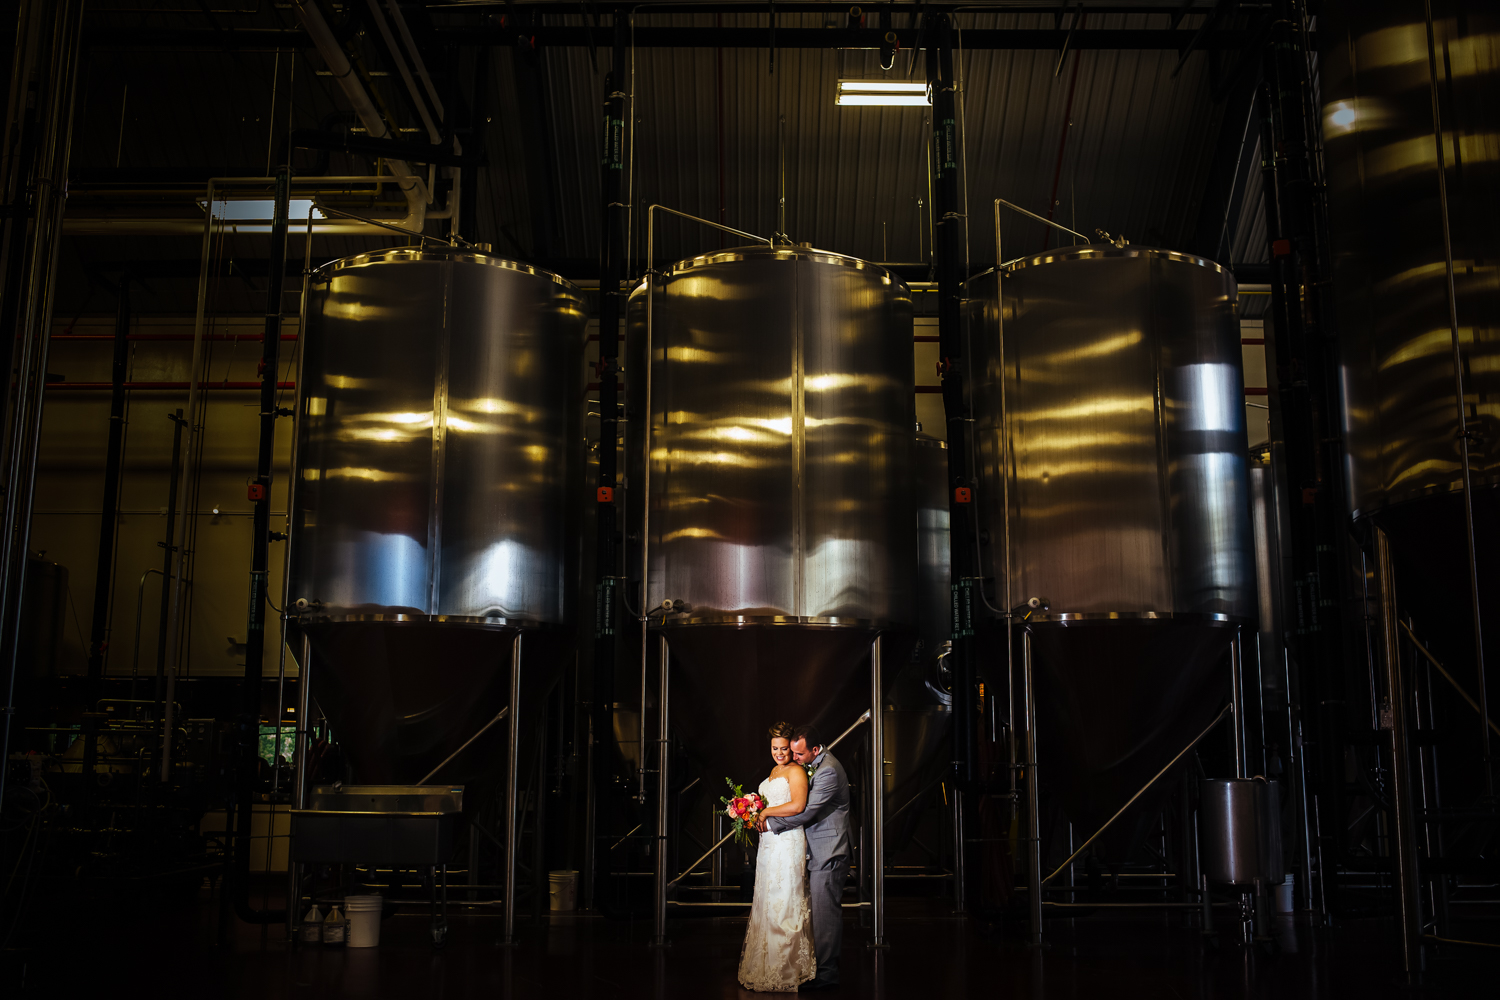 Dramatic photo of bride and groom in a brewery.